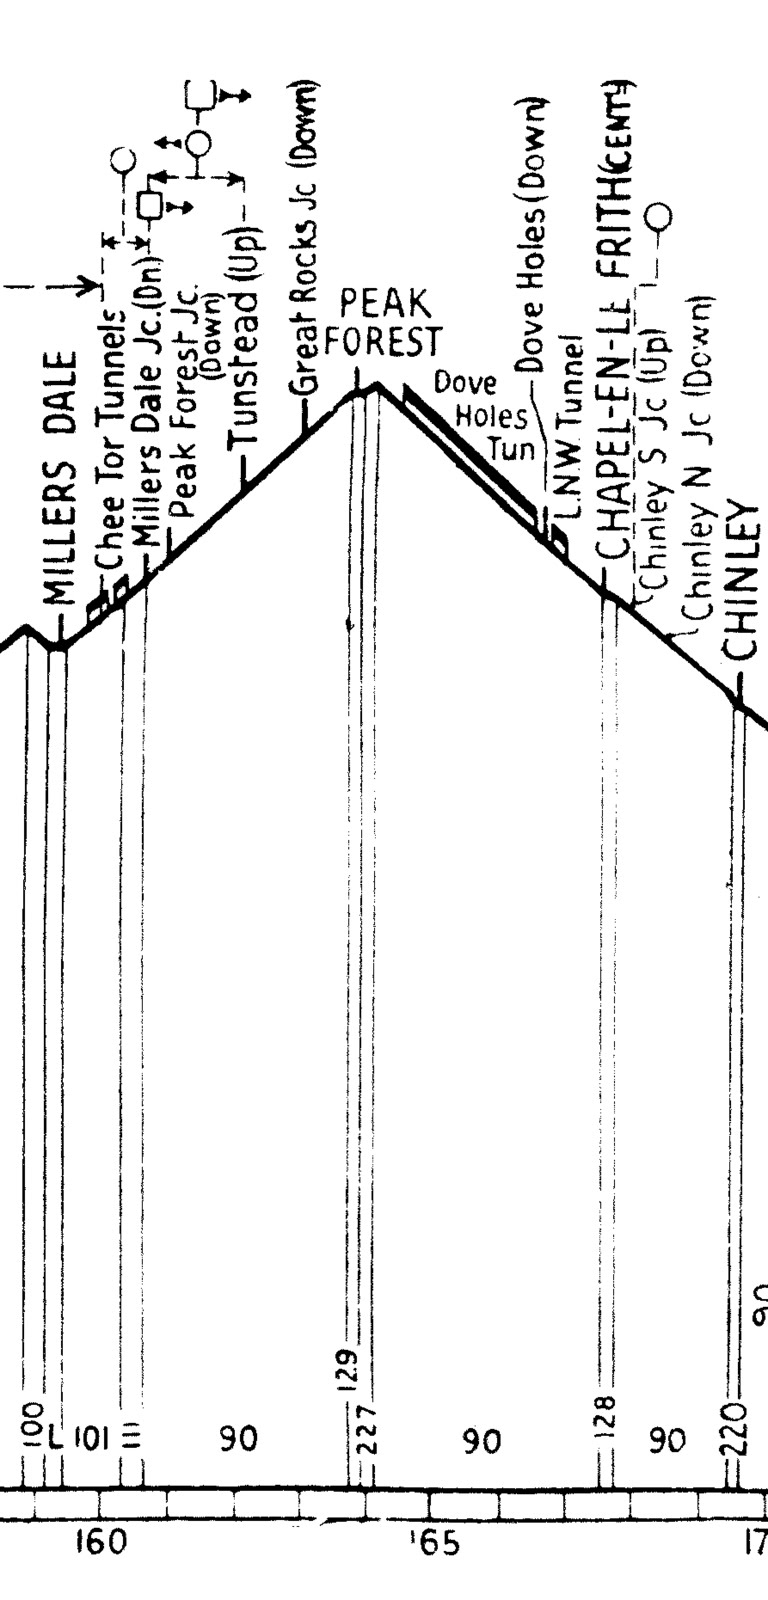 jan ford u0026 39 s world  track diagrams  peak forest